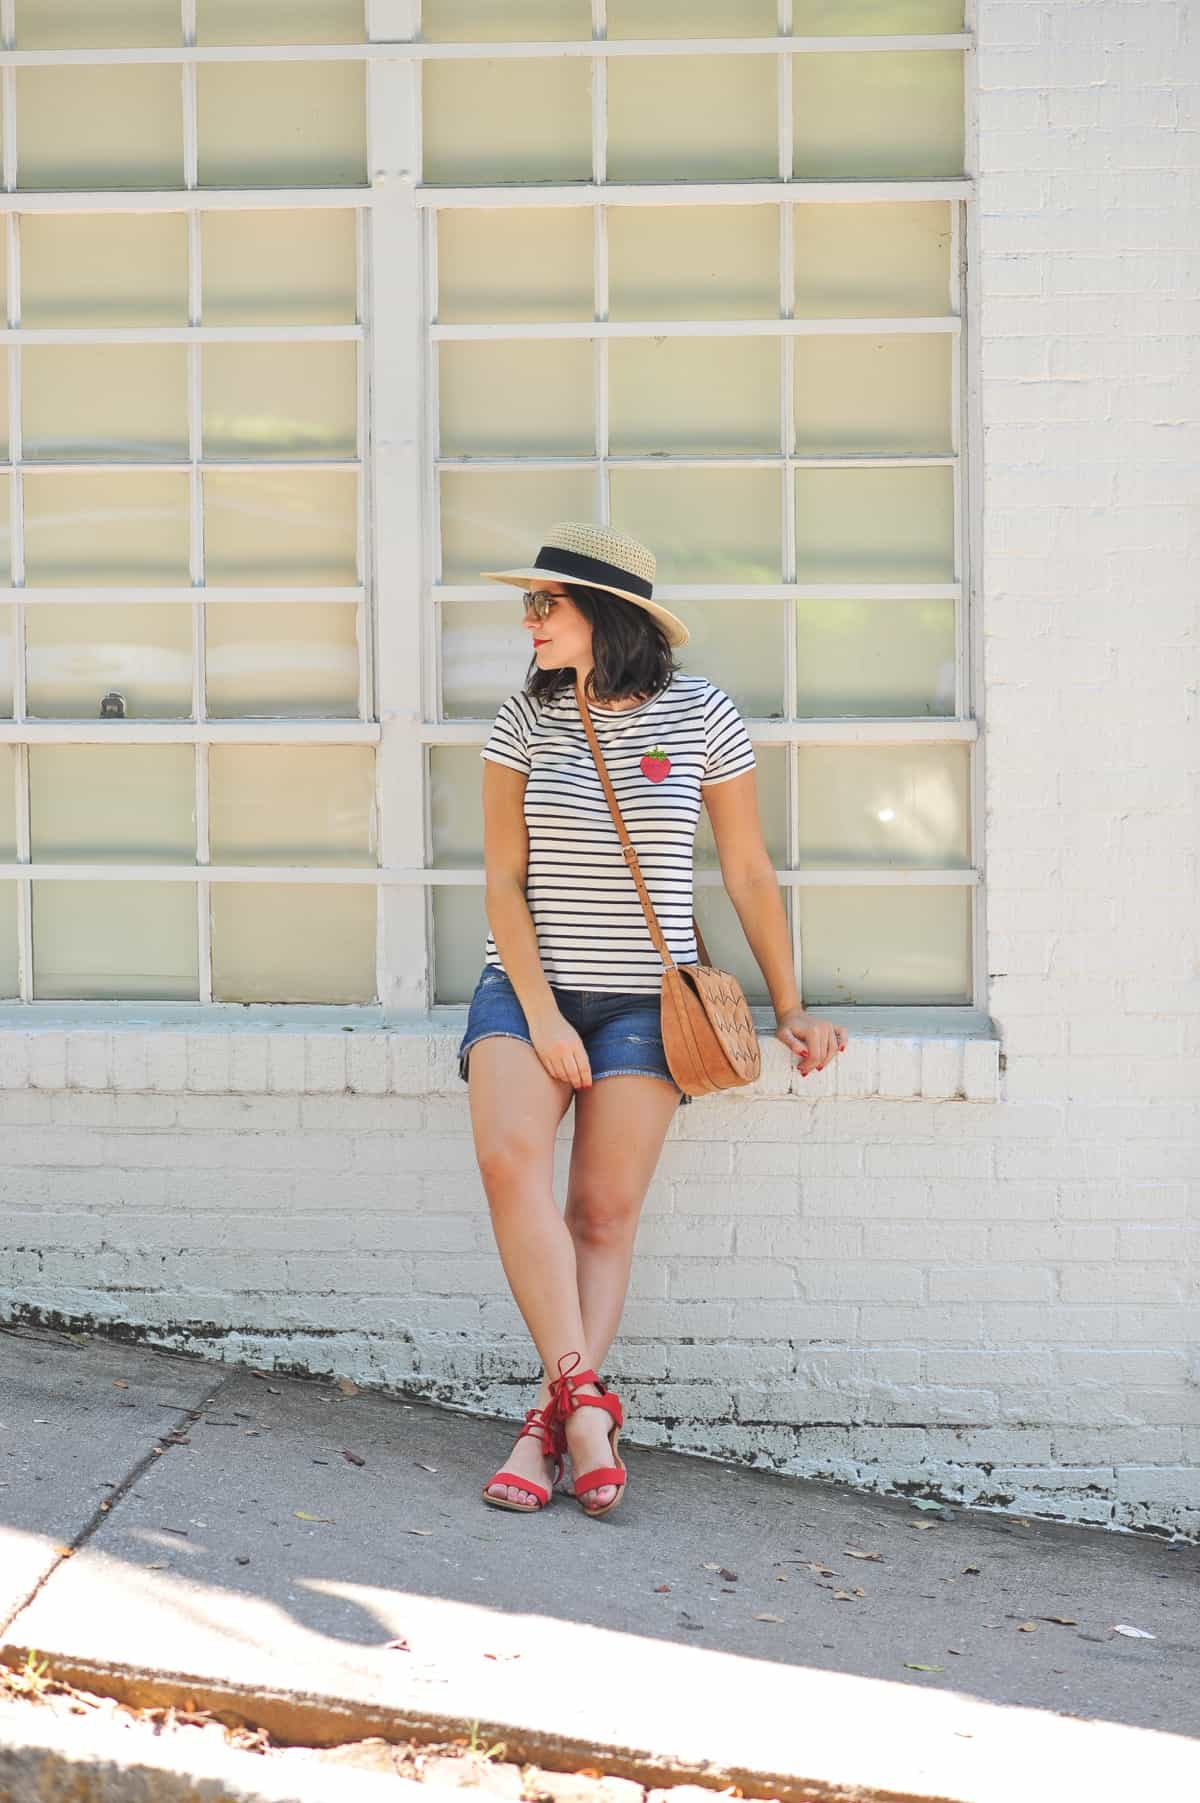 4th of july outfit ideas, striped tee outfits - @mystylevita - 4